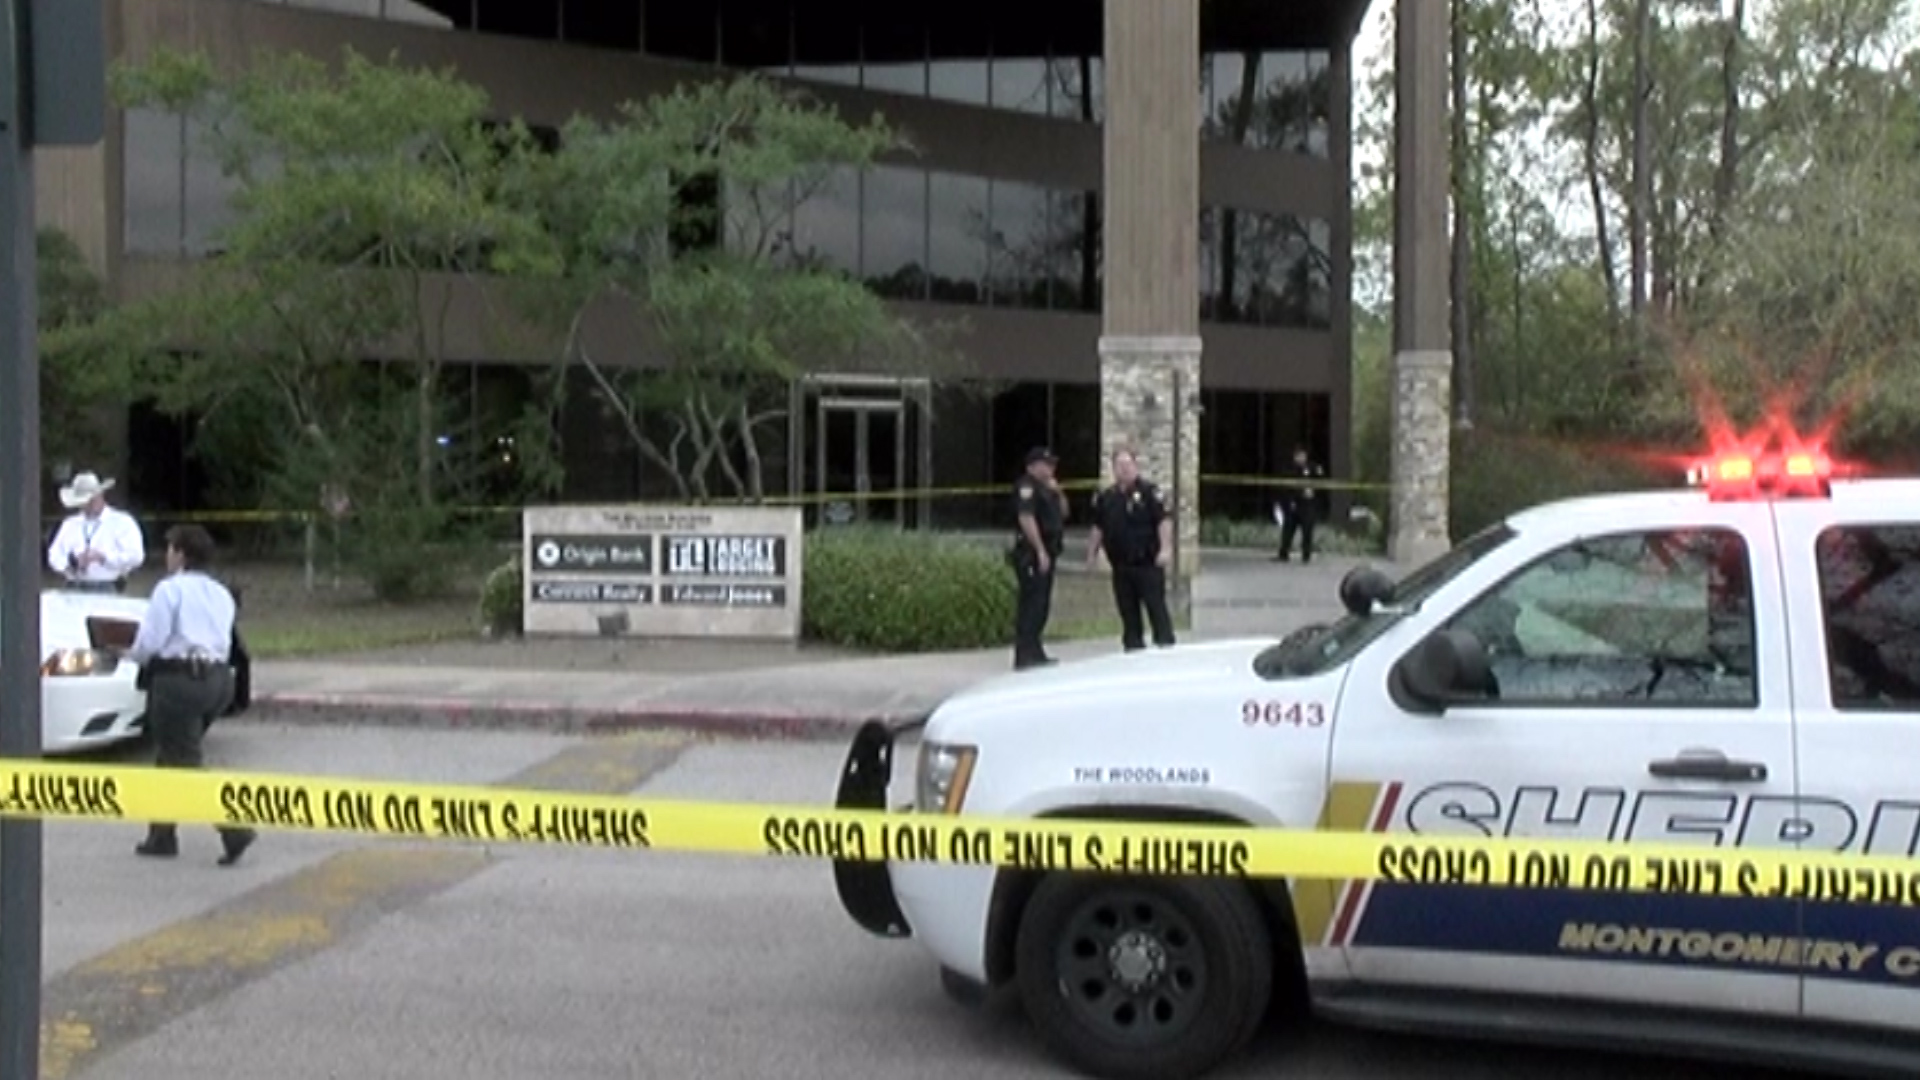 VICTIMS OF WOODLANDS SHOOTING IDENTIFIED